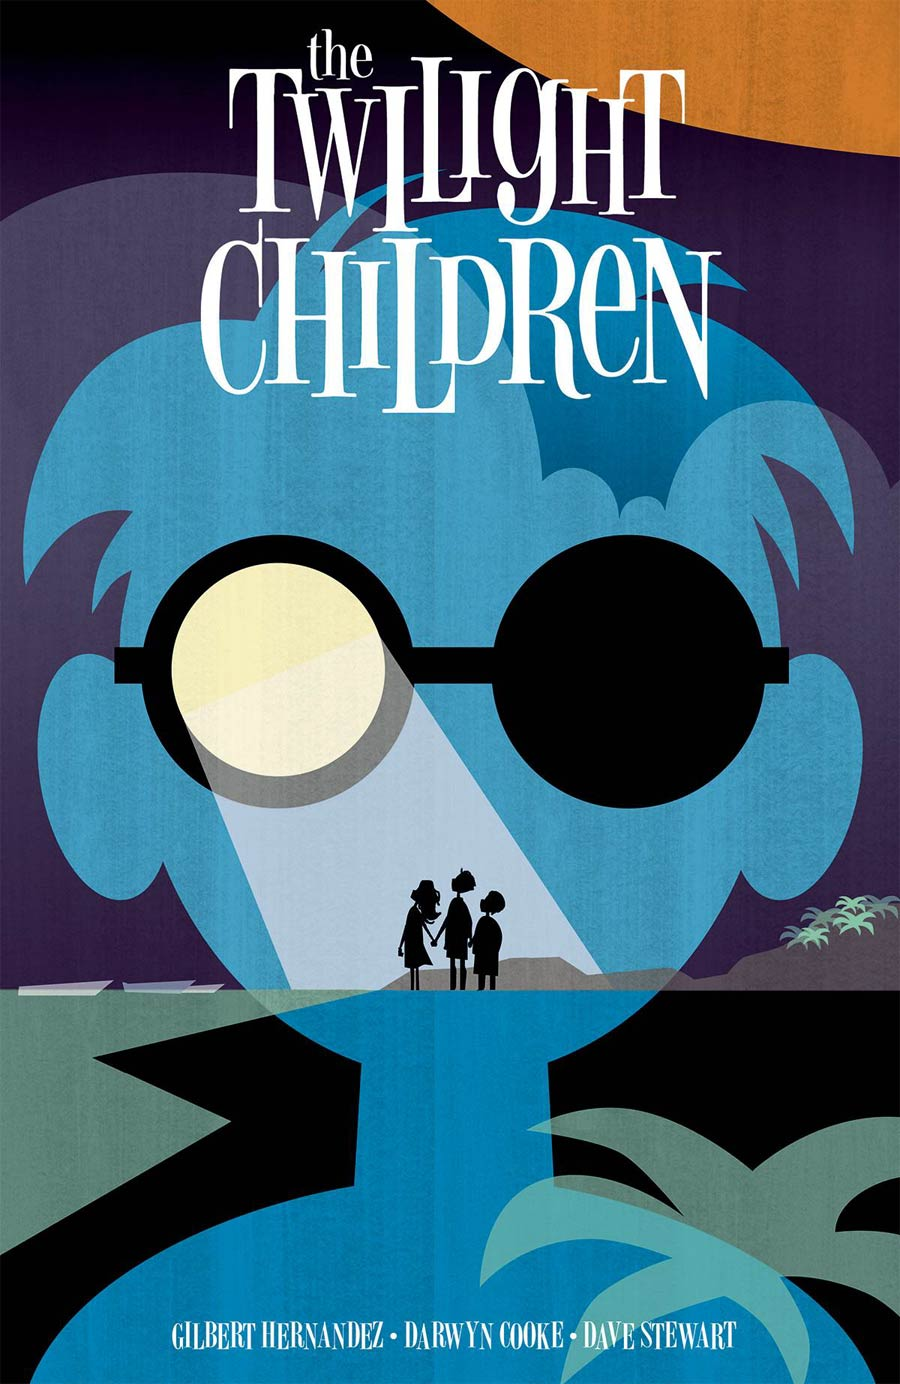 The Twilight Children - Gilbert Hernandez (W), Darwyn Cooke (A) • Vertigo Comics